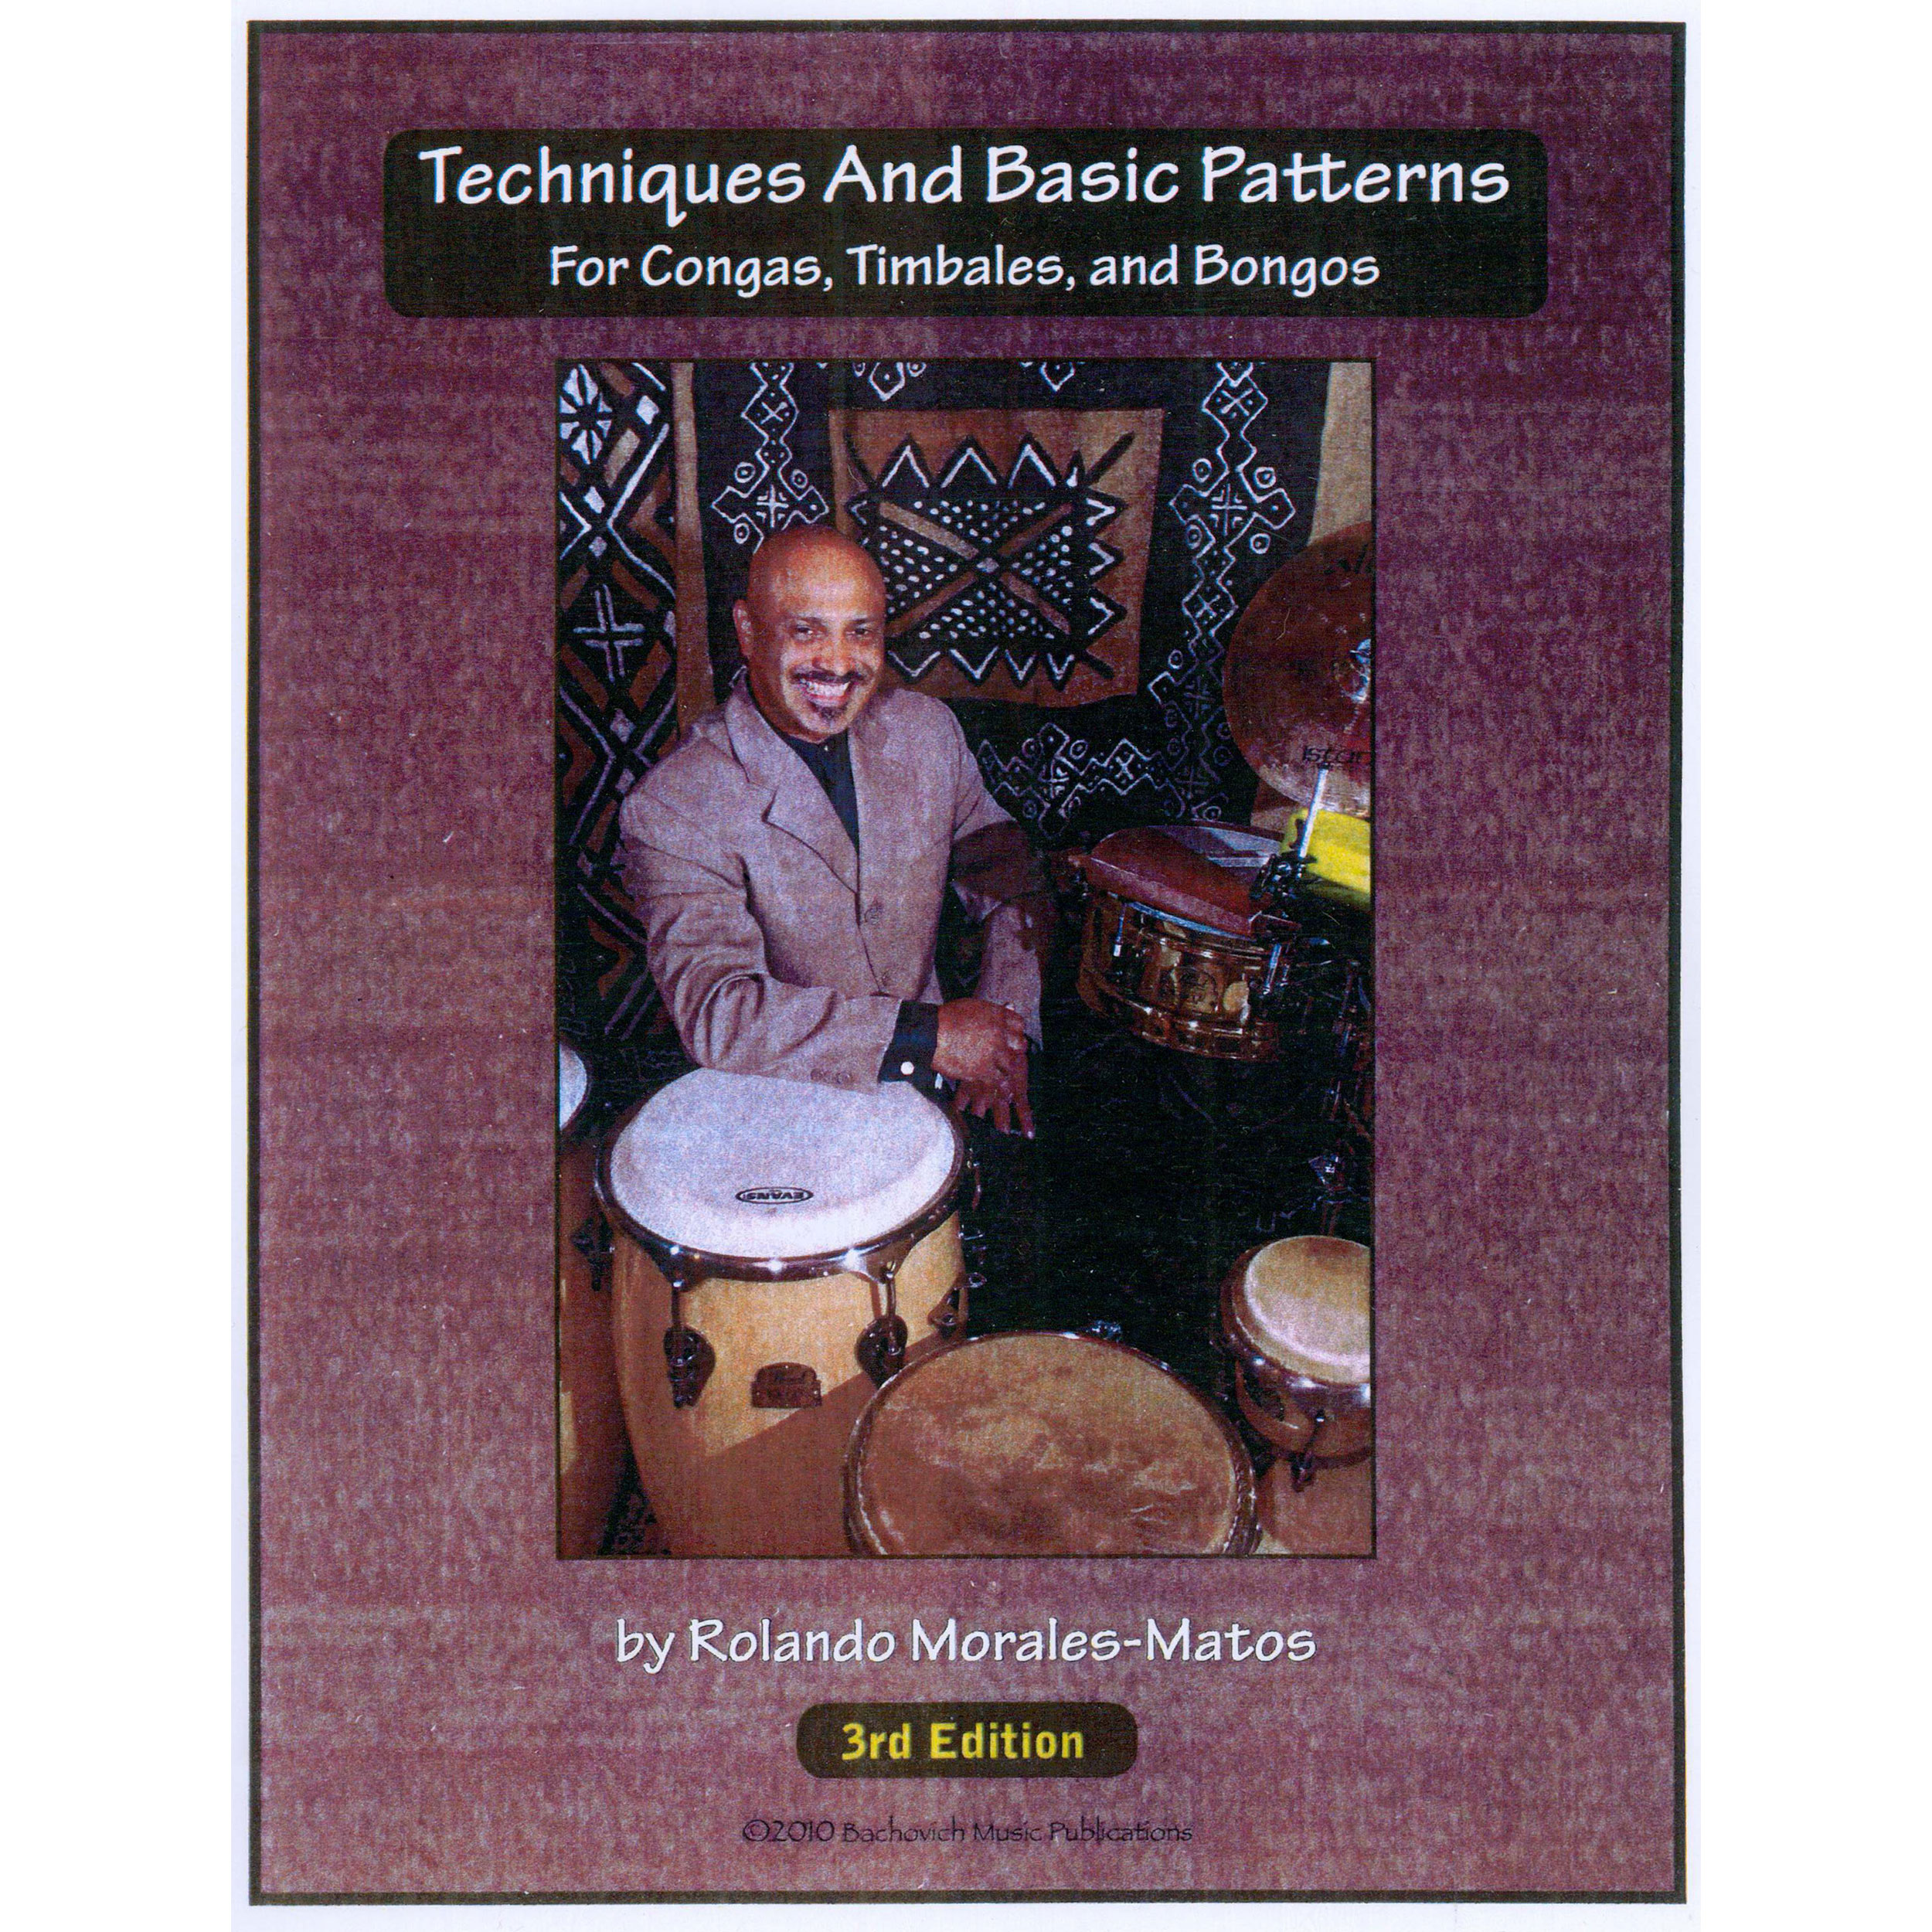 Techniques and Basic Patterns for Congas, Timbales, and Bongos by Rolando Morales-Matos